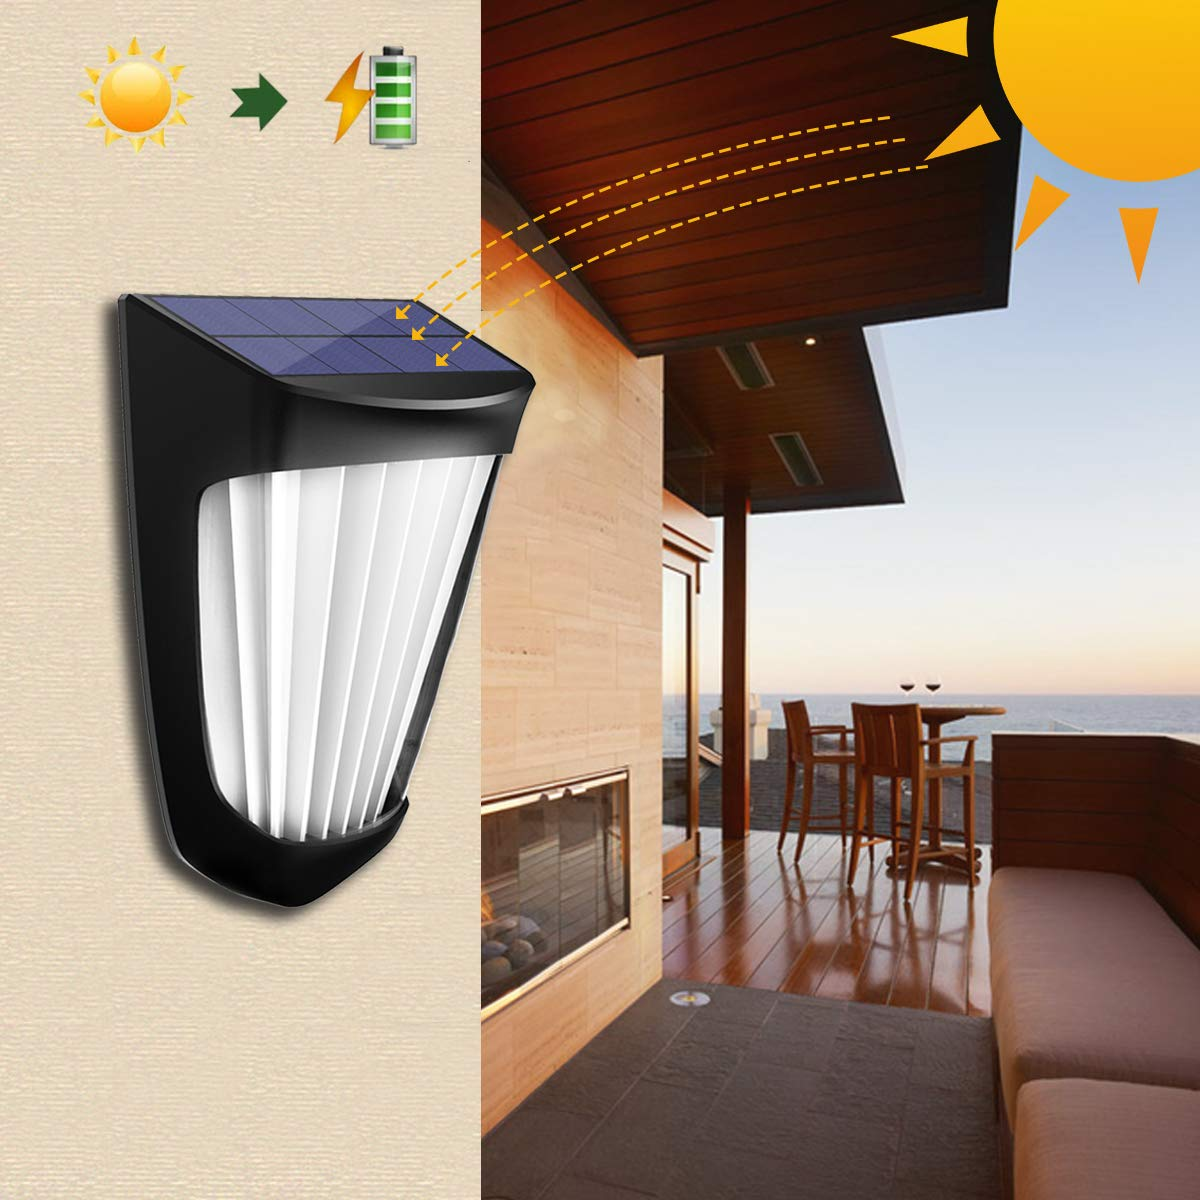 OPERNEE Solar Lights Outdoor, (2 Pack) Wireless 10 Led Solar Fence Lights Waterproof Auto ON/Off Wall Decorative Lights for Porch, Patio, Deck, Yard, Garden by OPERNEE (Image #3)